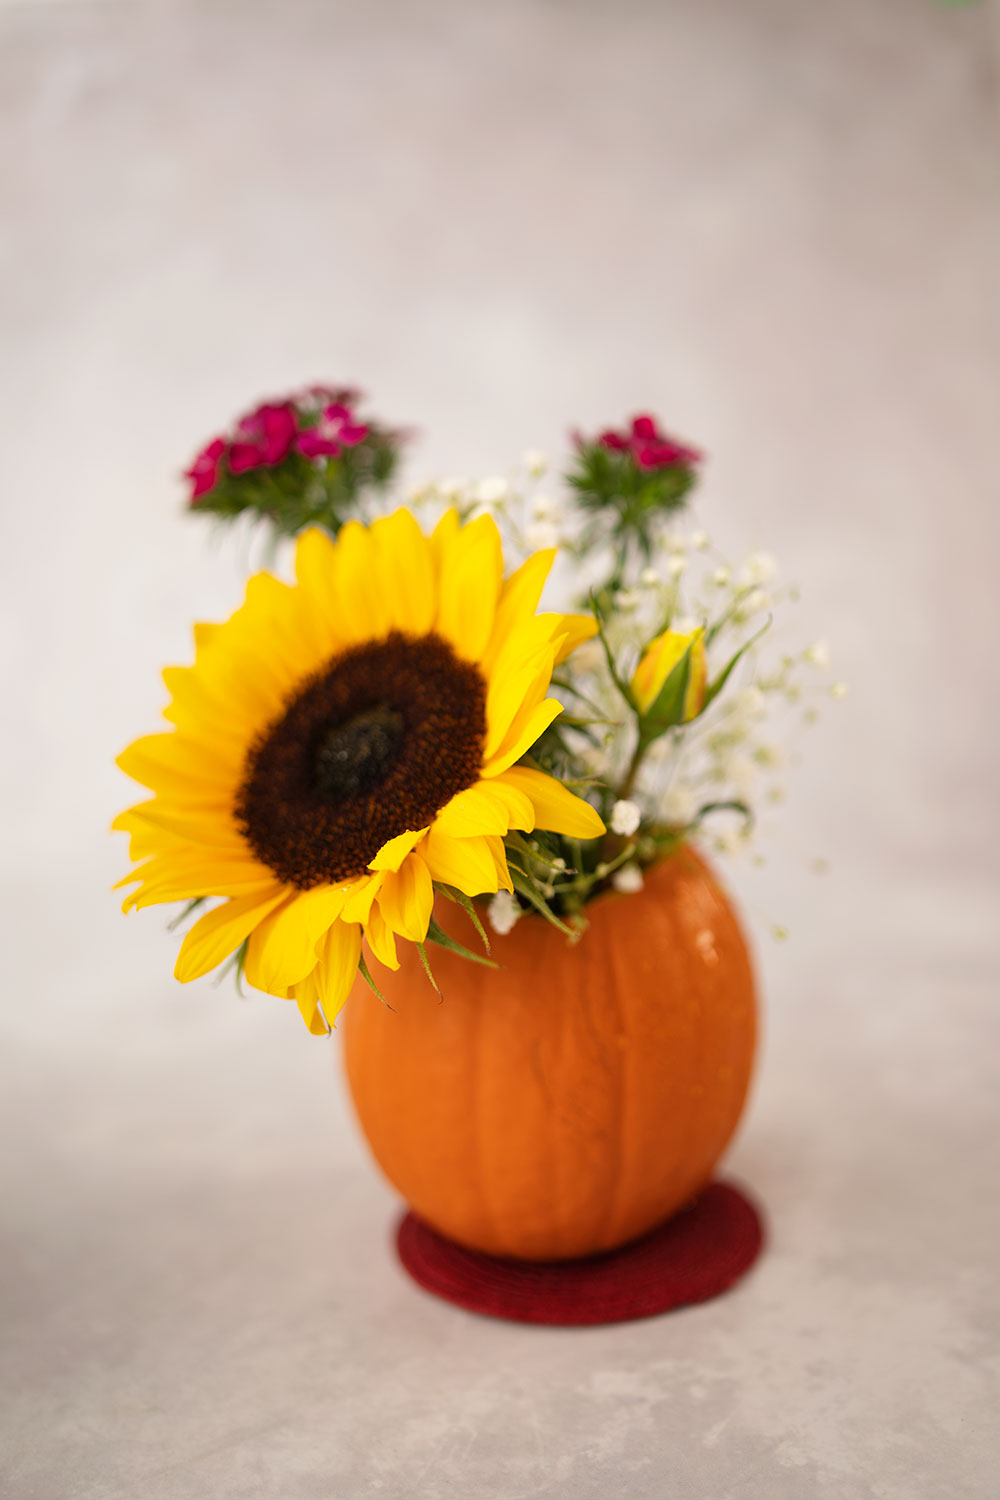 small pumpkin used like a vase and has a sunflower and a yellow rose with smaller flowers